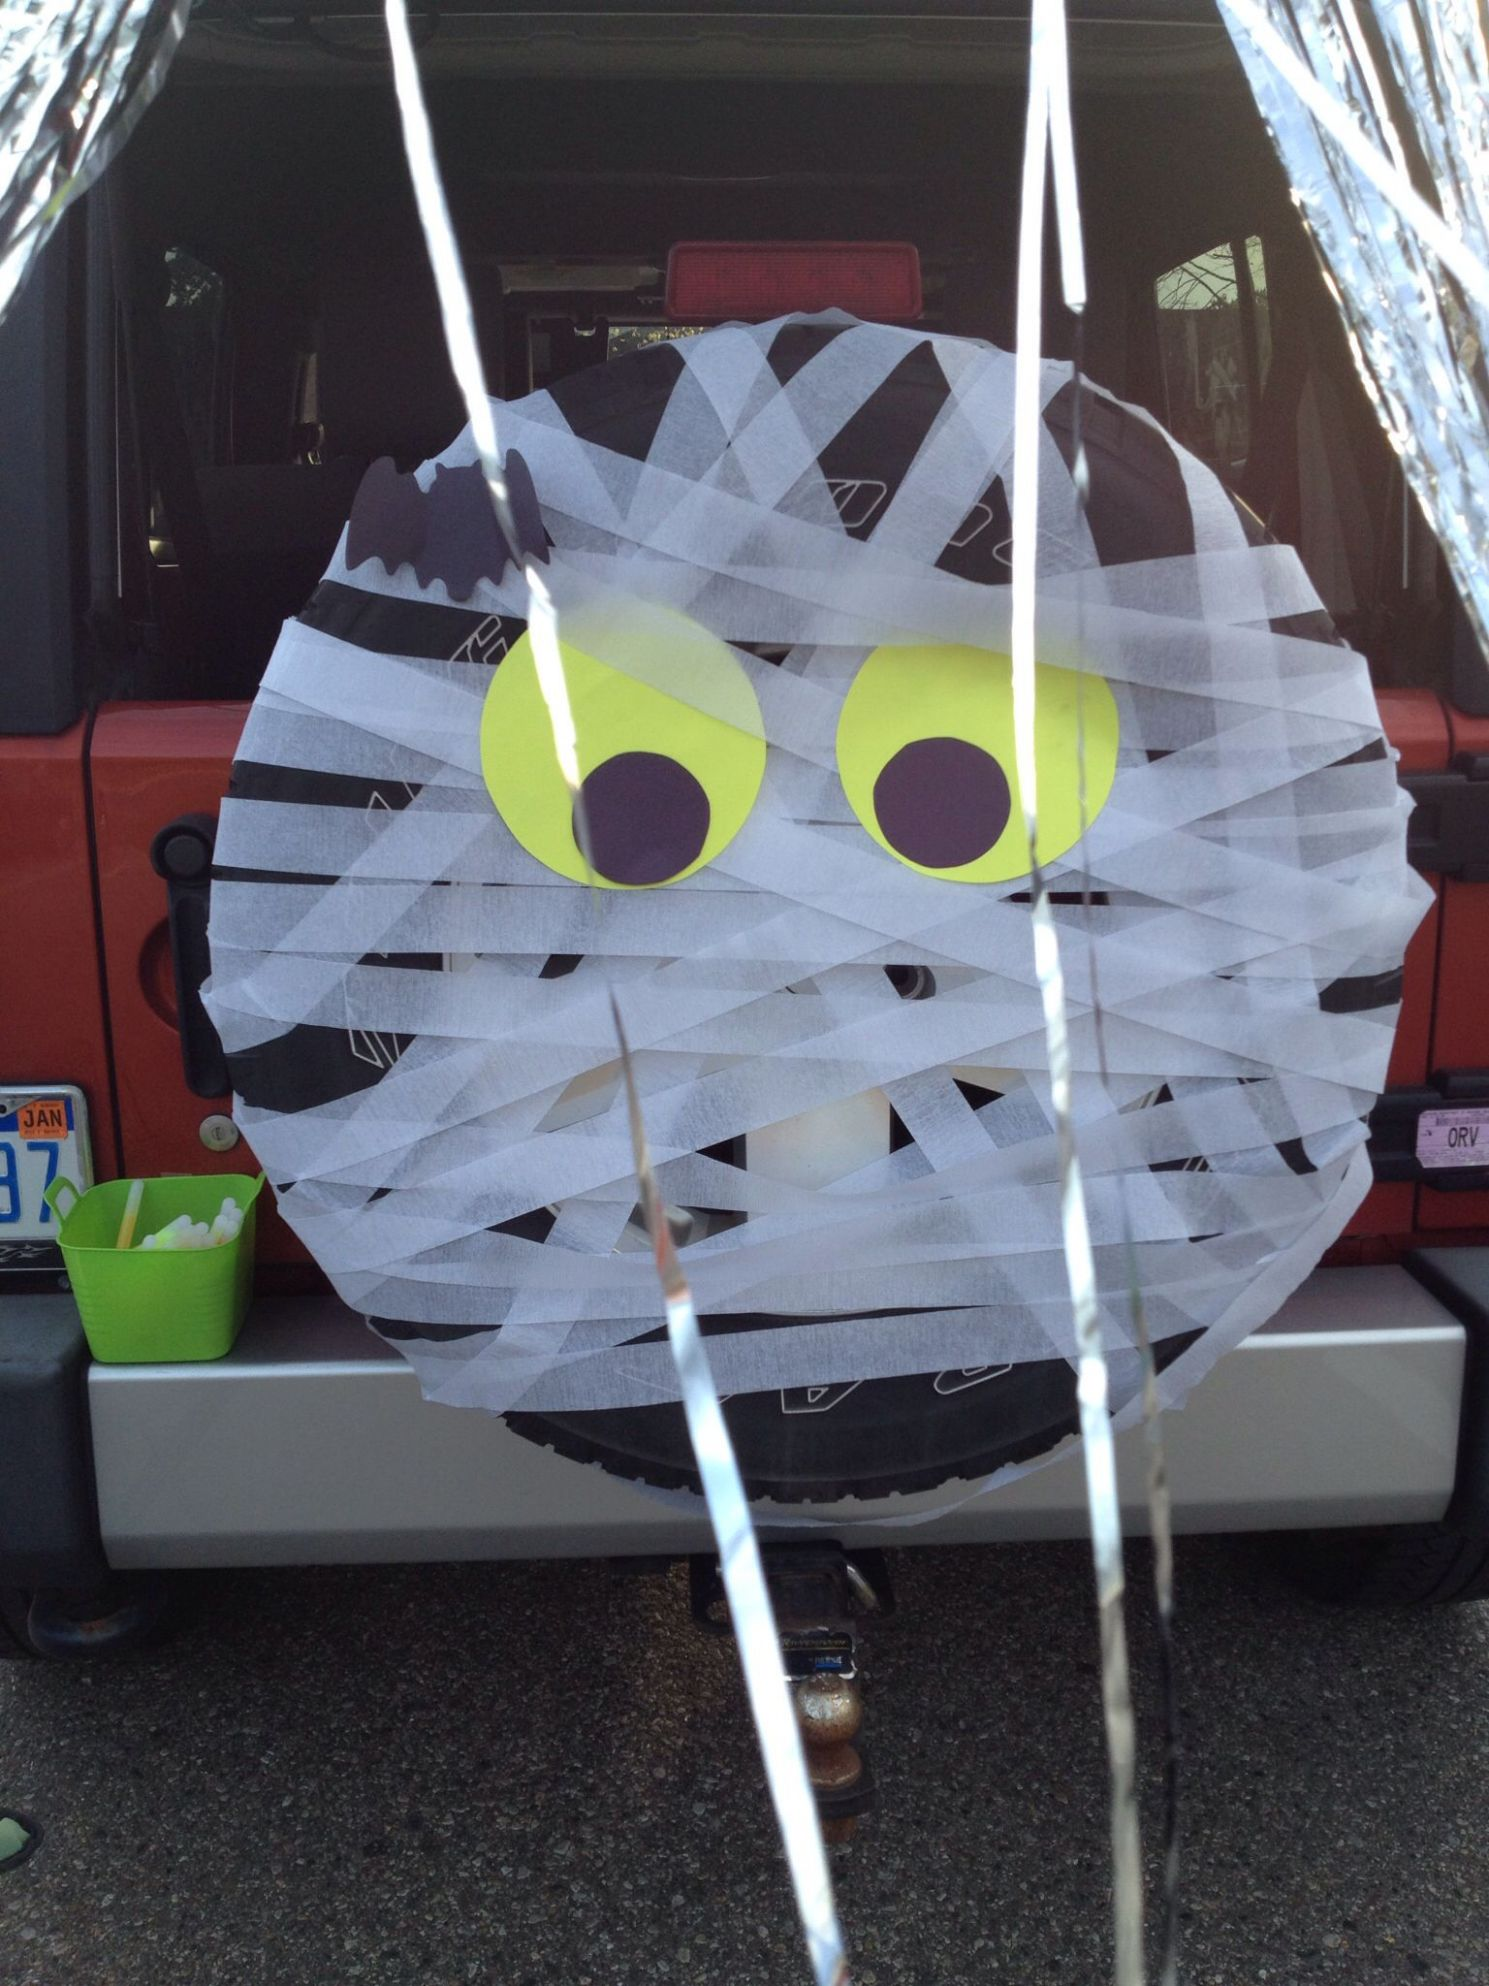 Jeep Halloween for Trunk or Treat (With images) | Trunk or treat ..